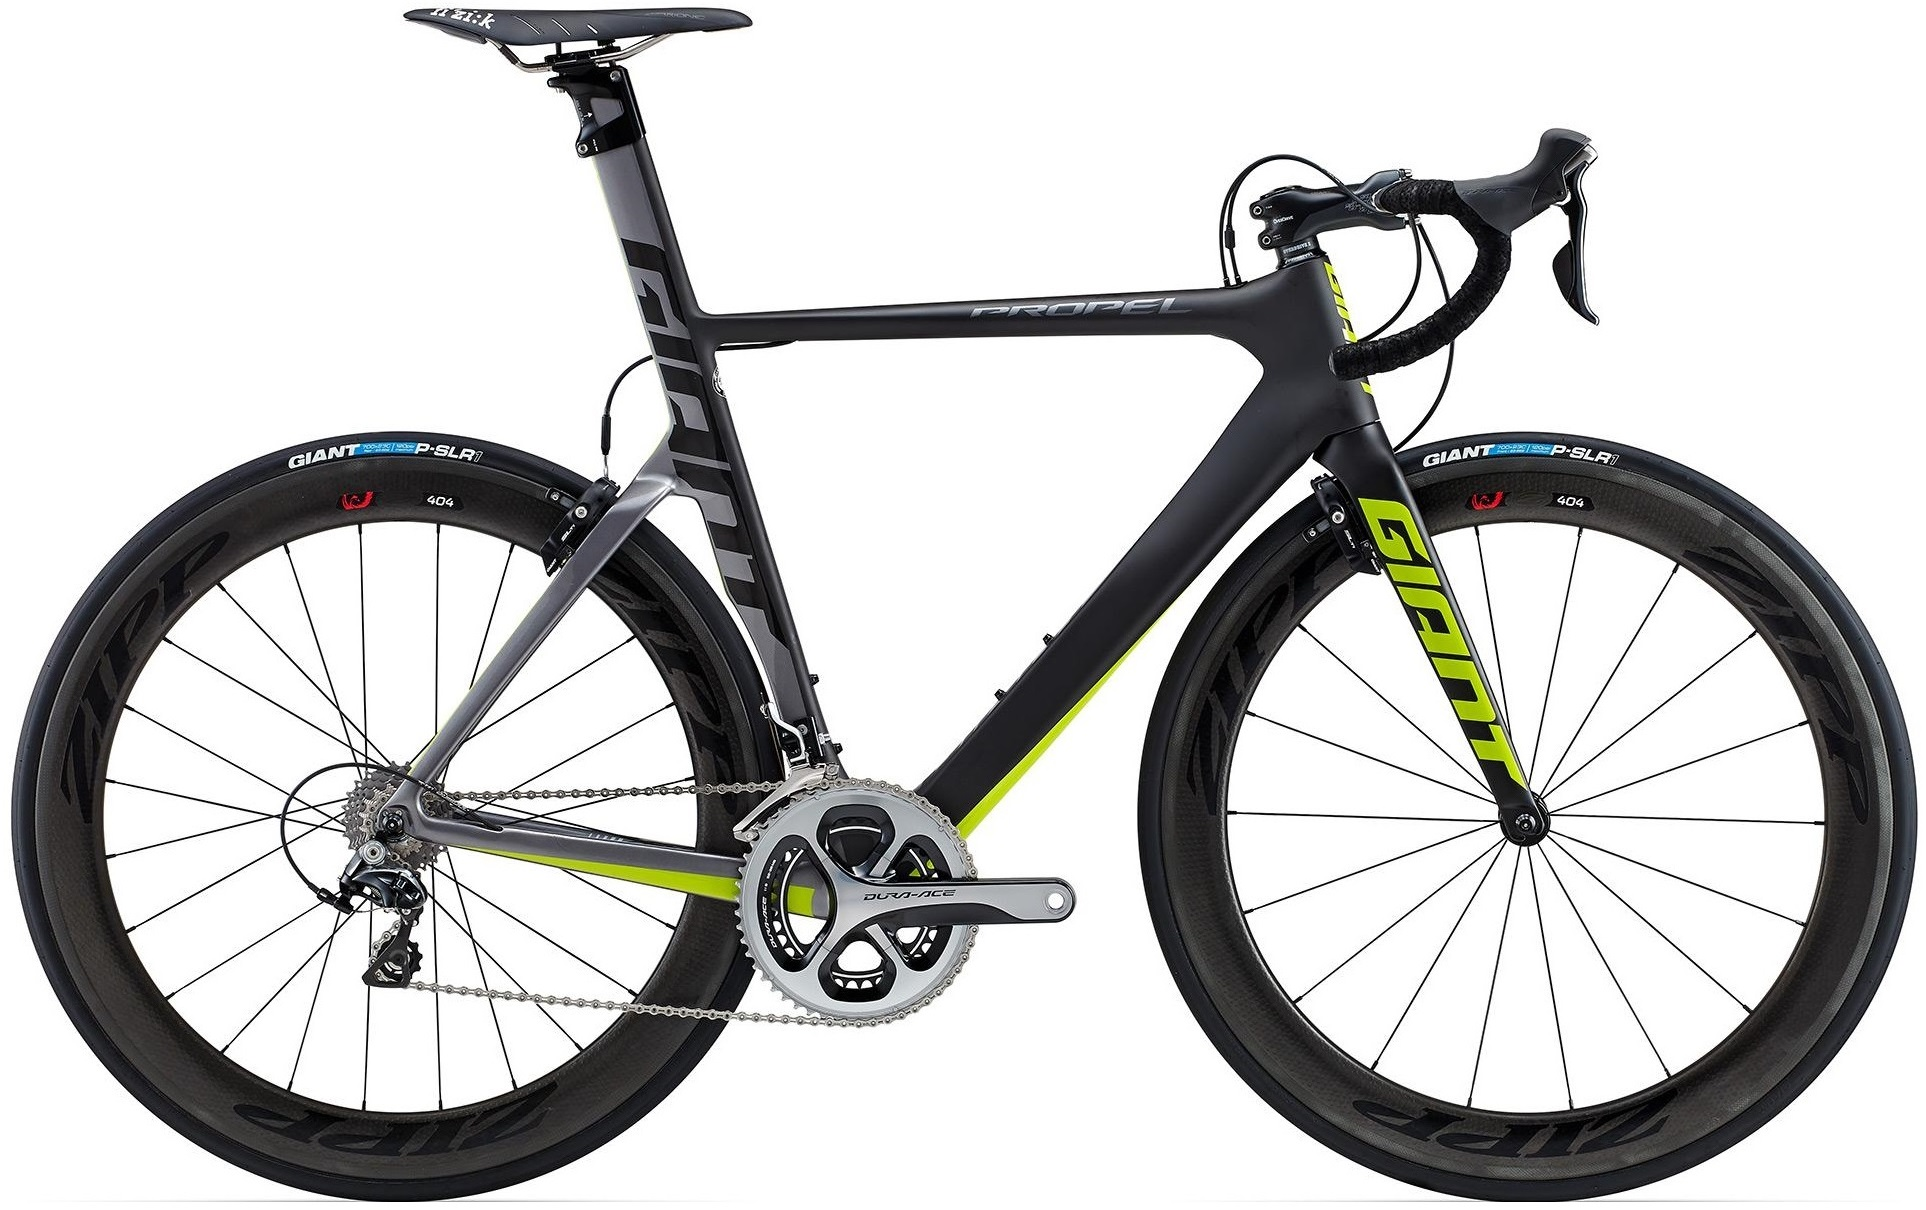 Giant Propel-Advanced-SL-1-2015 dura ace lime blackneuroticarnutzLitespeed Ci2 2014 black lime